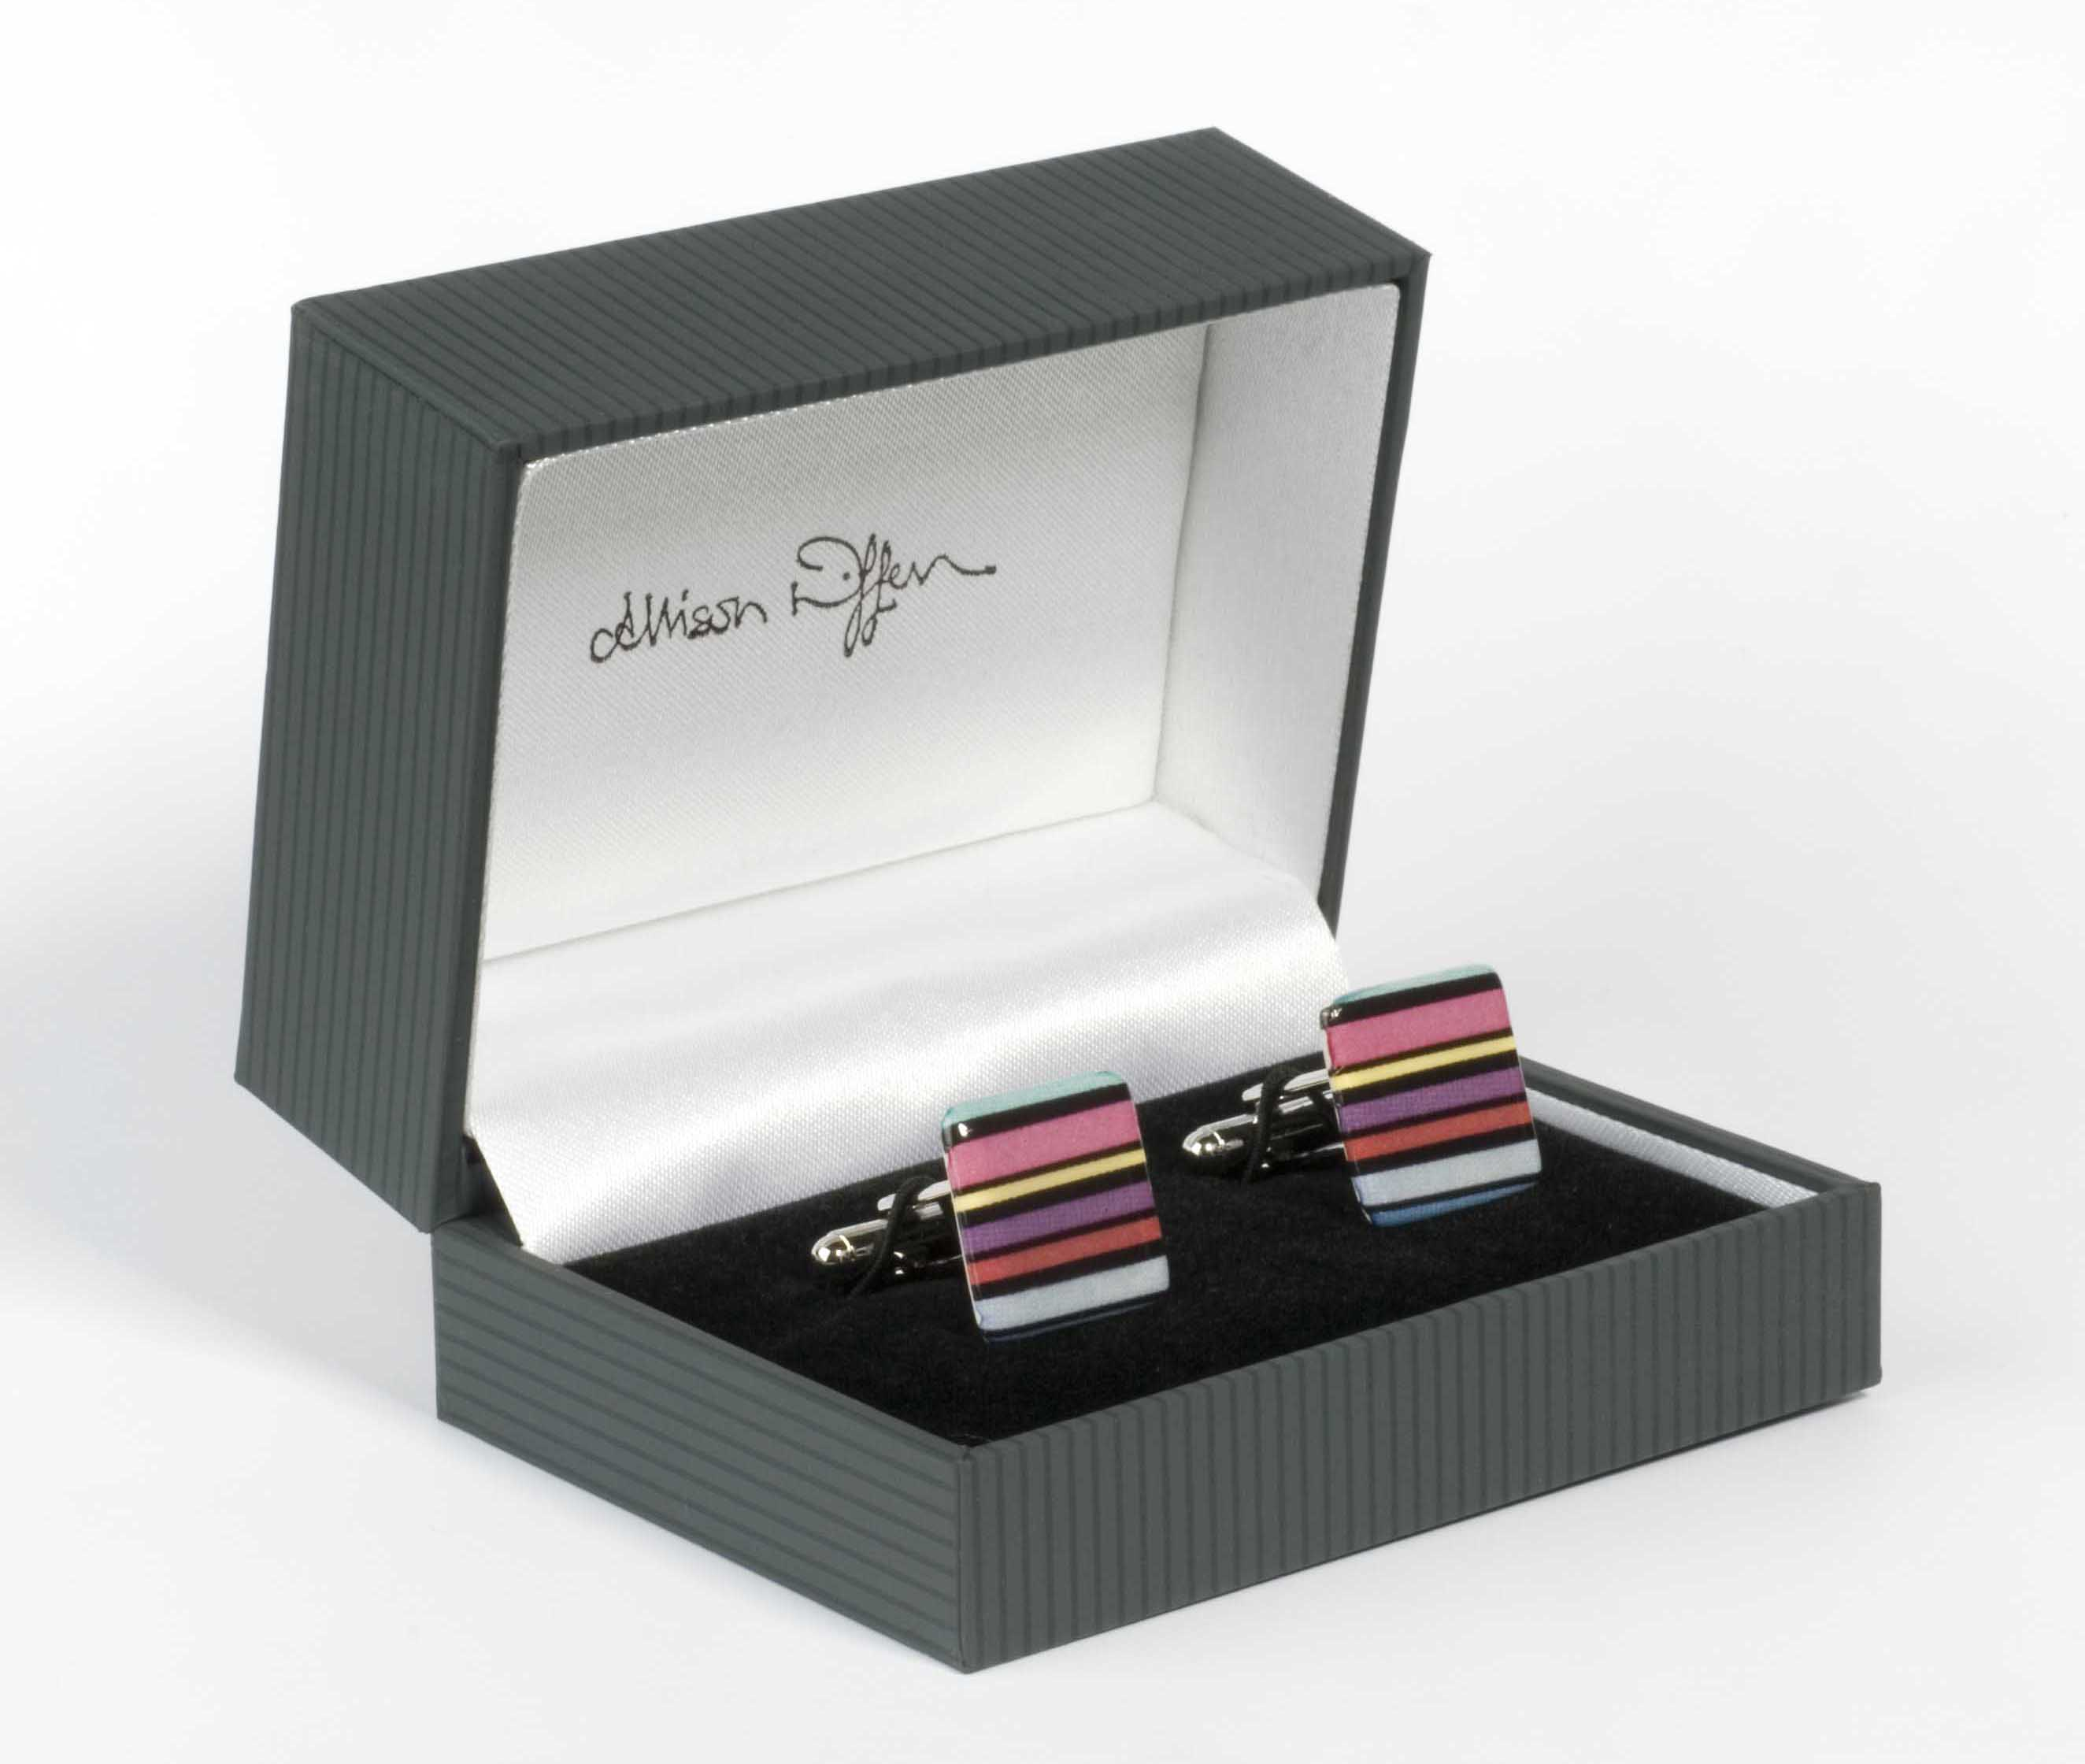 Allison Wiffen cufflinks and box